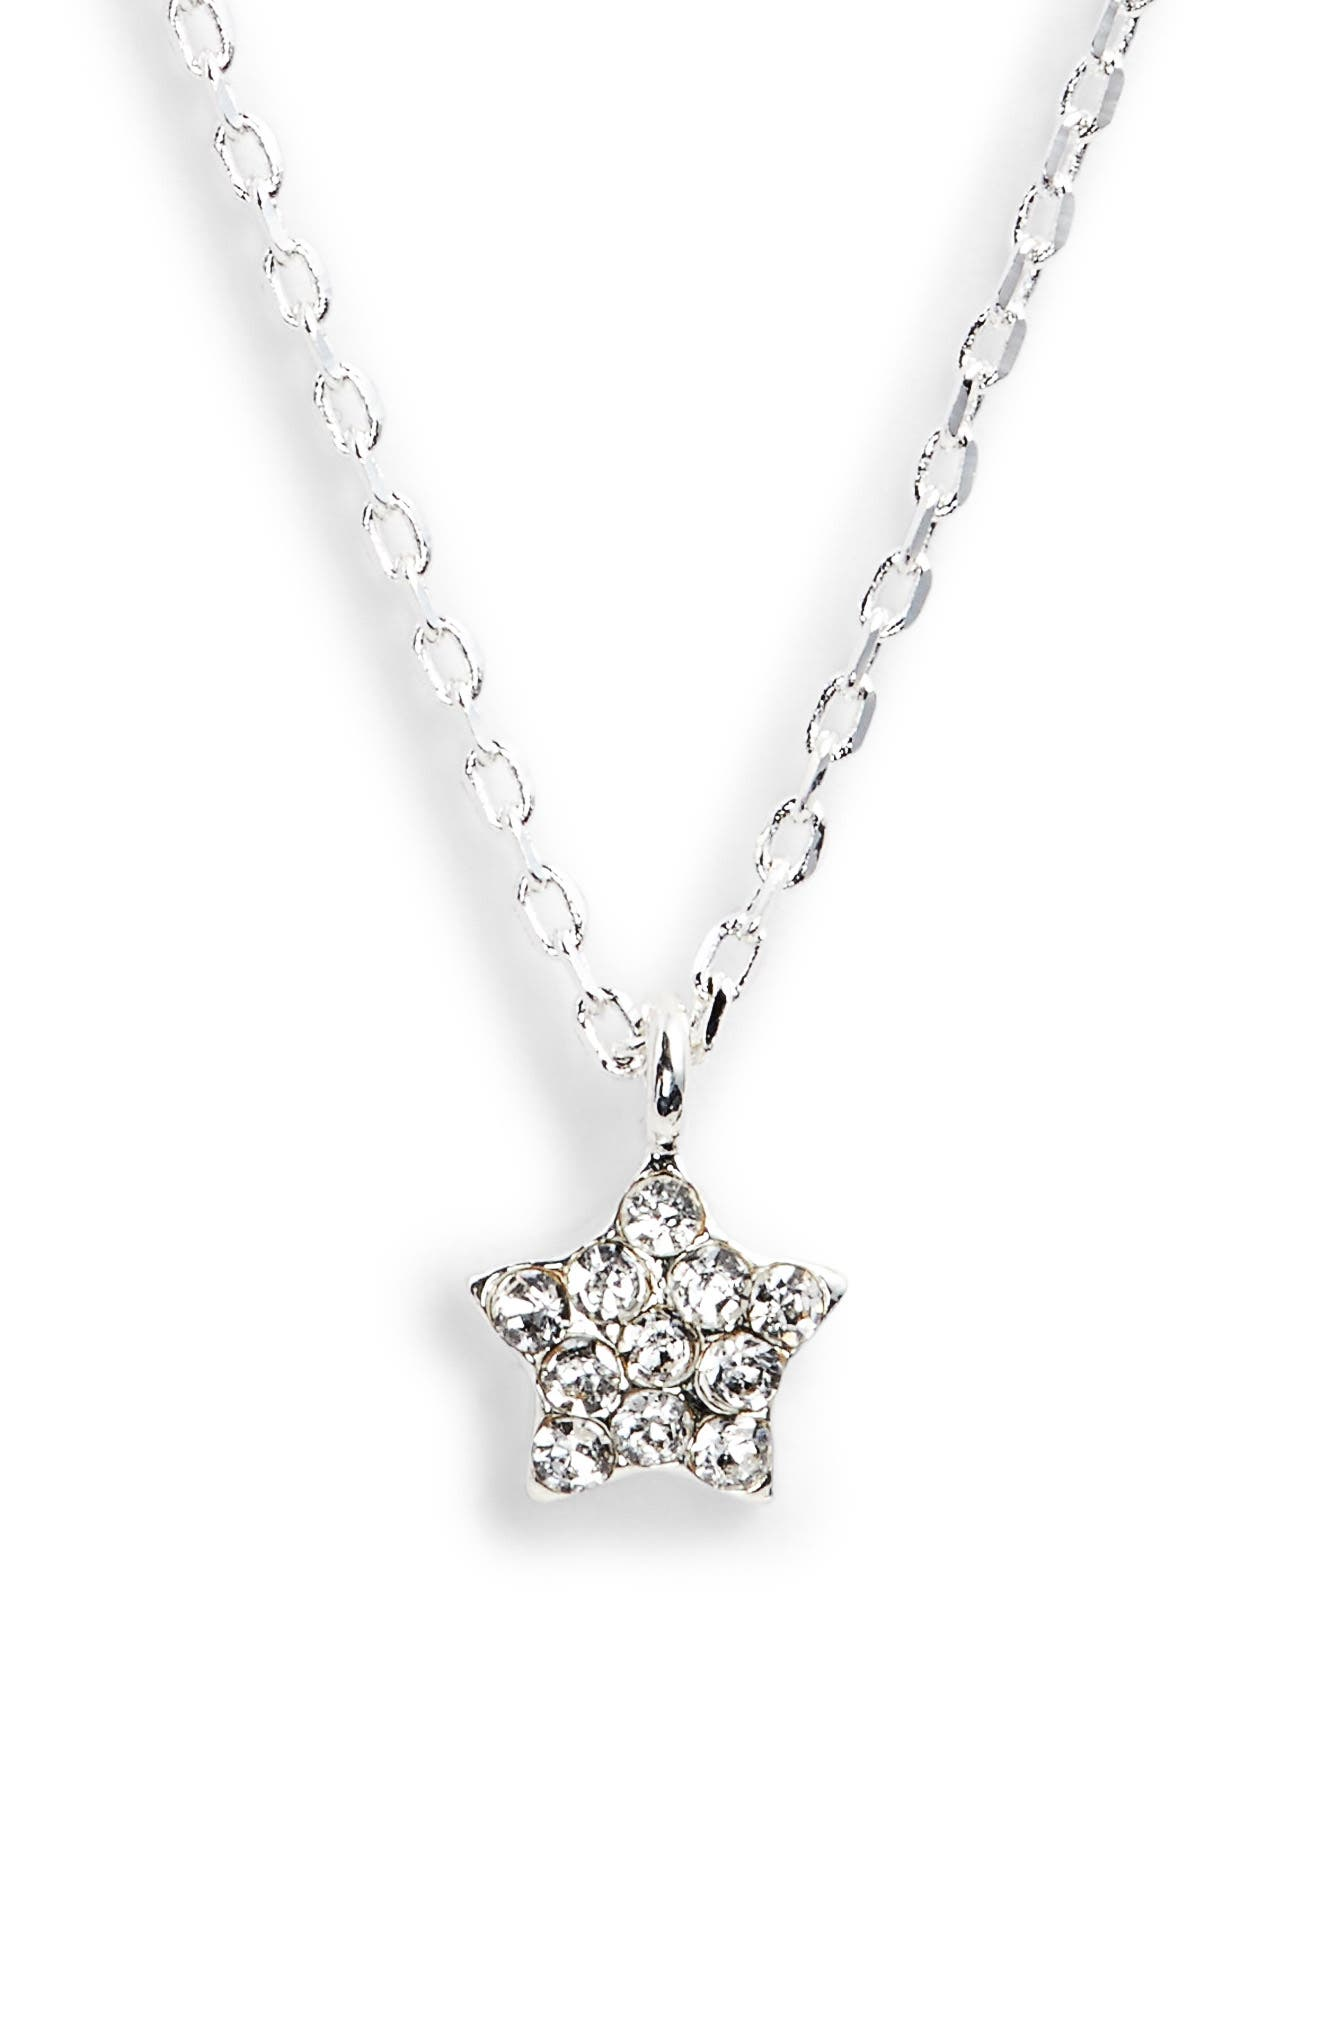 Star Pendant Necklace,                             Main thumbnail 1, color,                             040